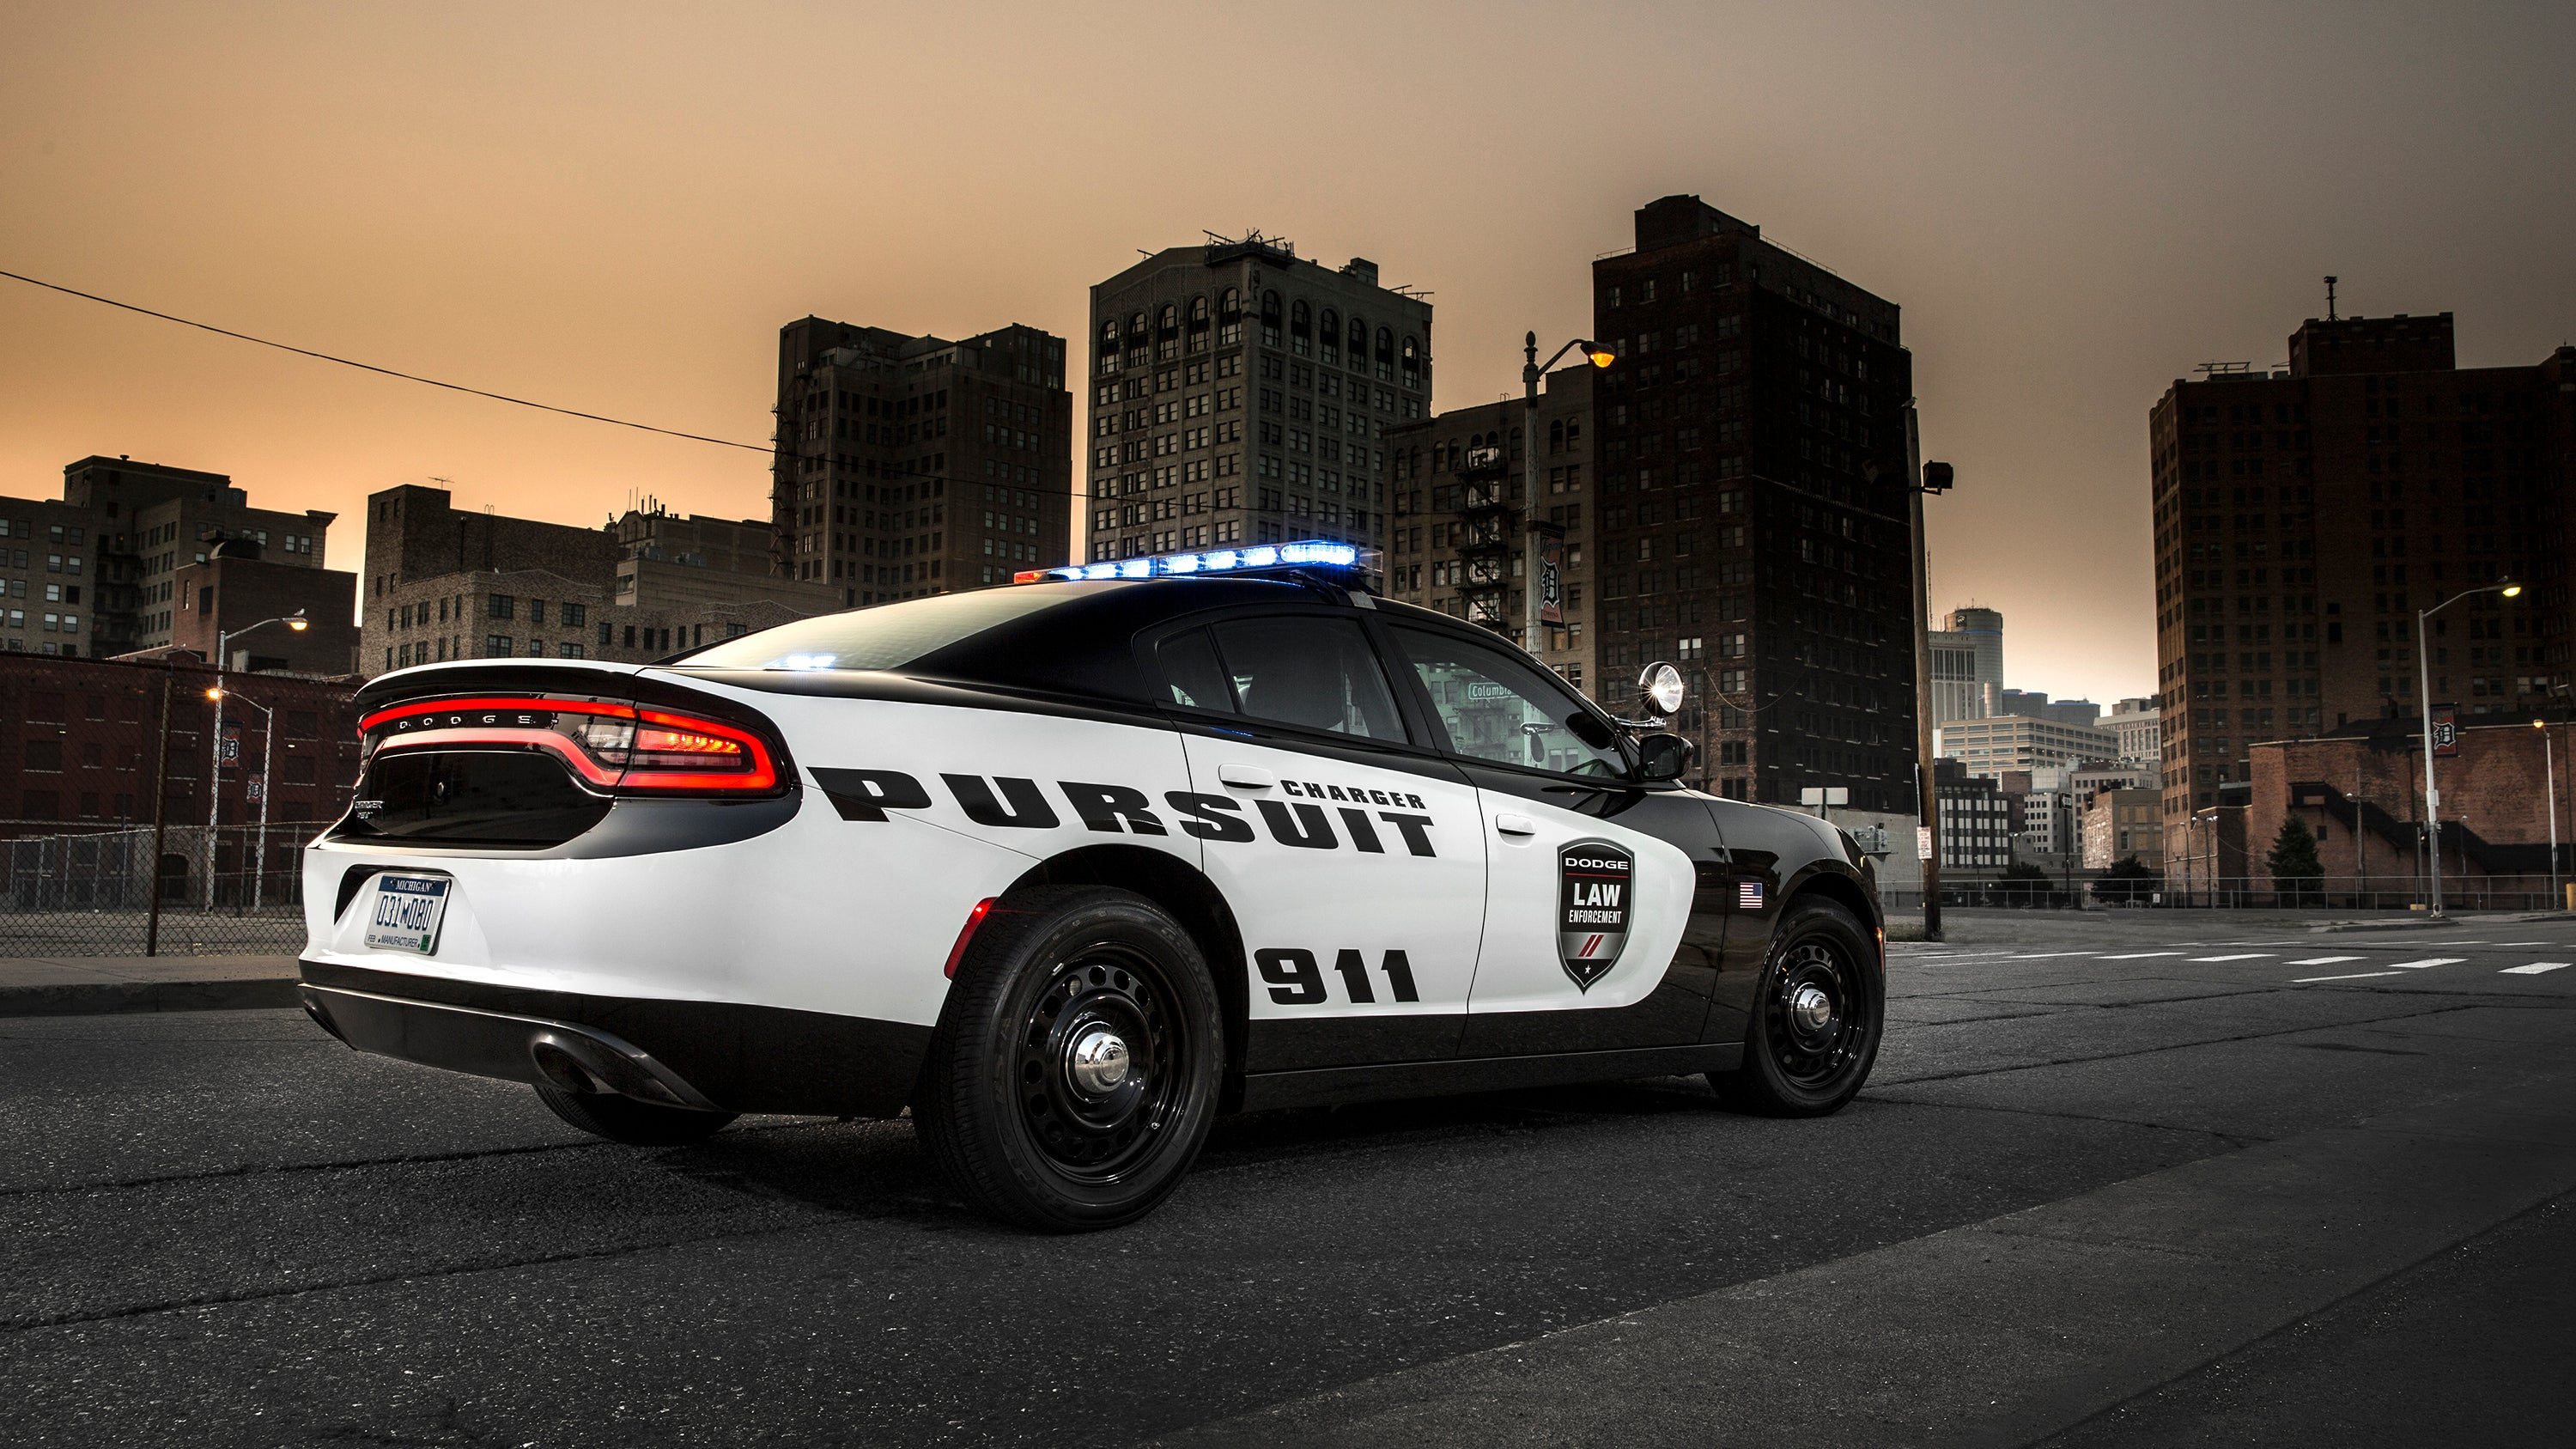 Dodge Is Giving Its New Police Cruiser Some Very RoboCop Upgrades